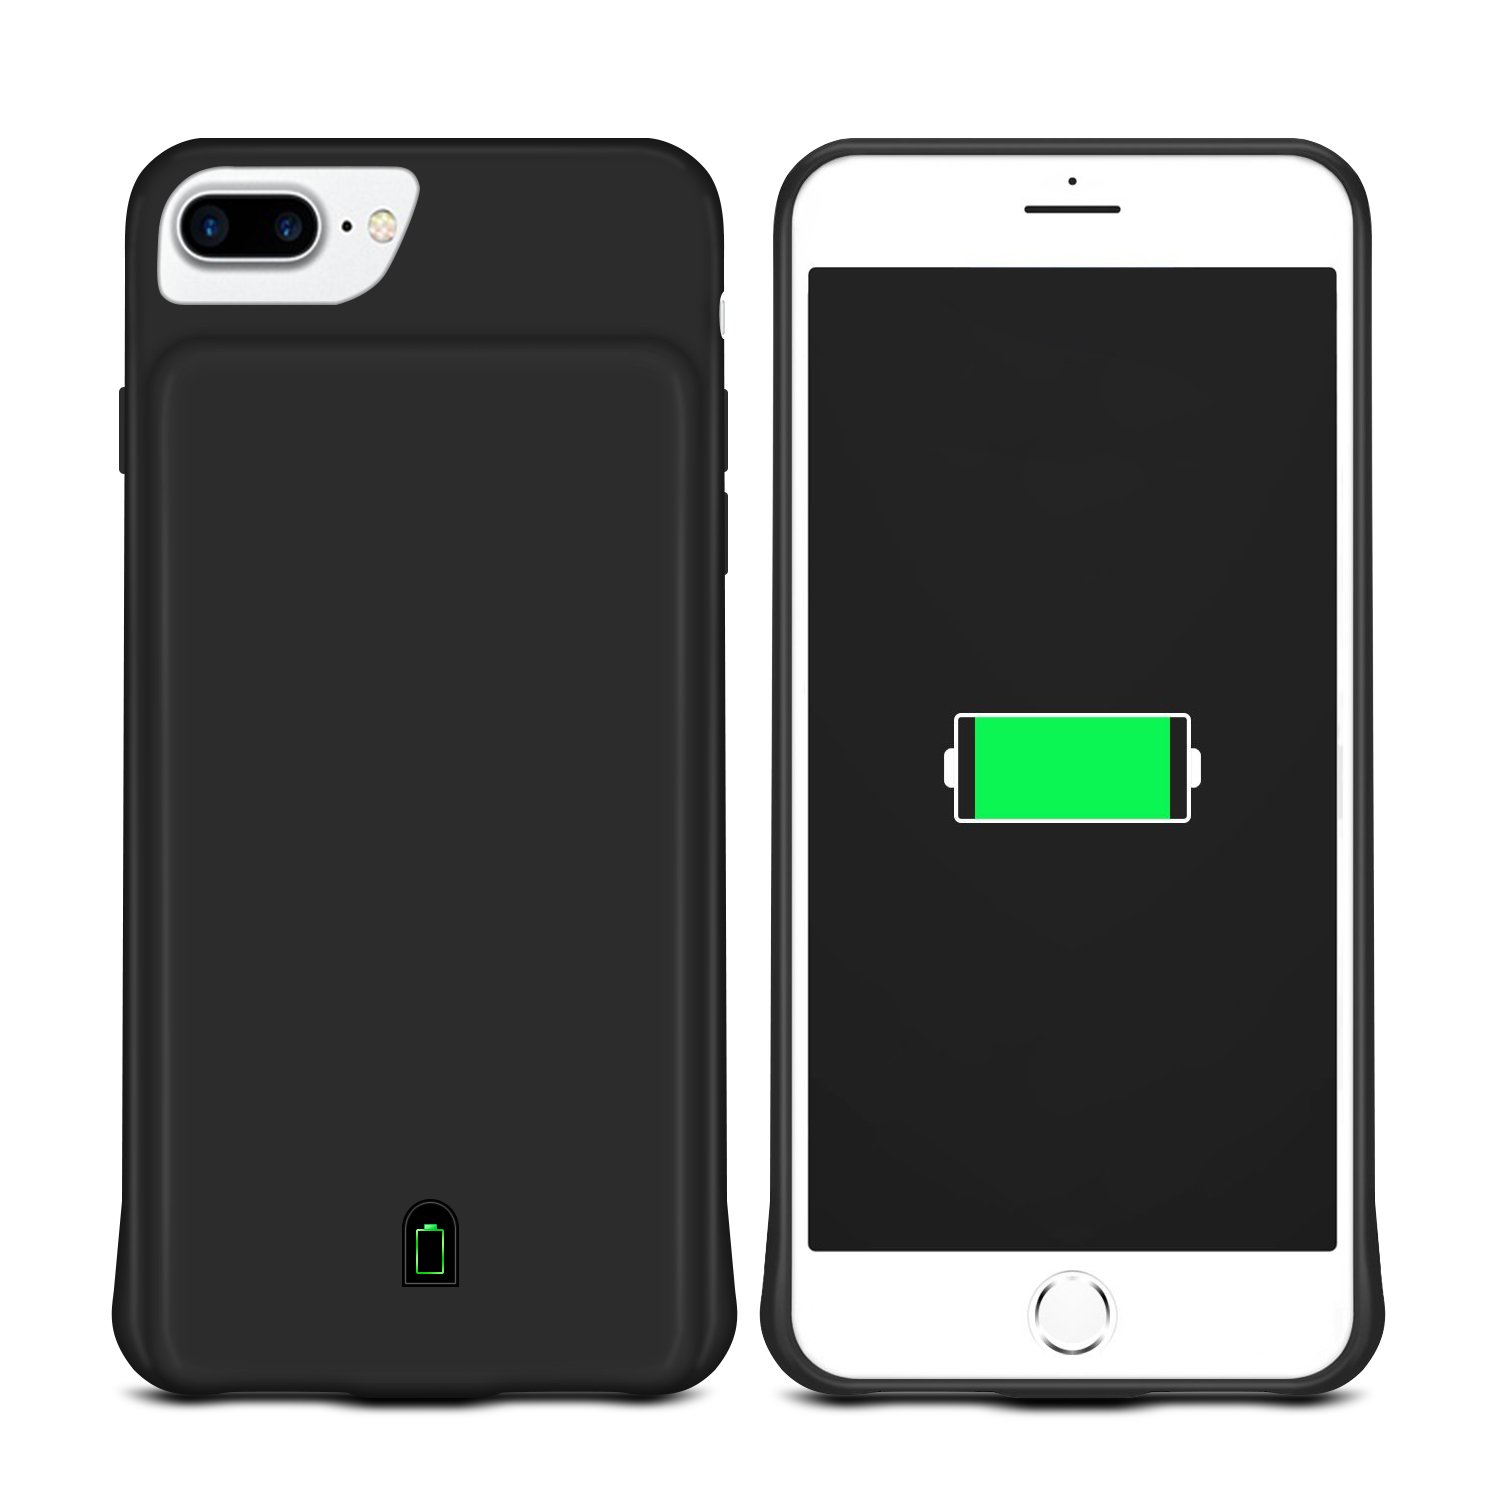 Coslight 7000mAh Capacity Support Headphones Ultra Slim Extended Battery Rechargeable Protective Portable Charger 5.5'' ,For iPhone 8 Plus / 7 Plus / 6s Plus / 6 Plus Battery Case, Black